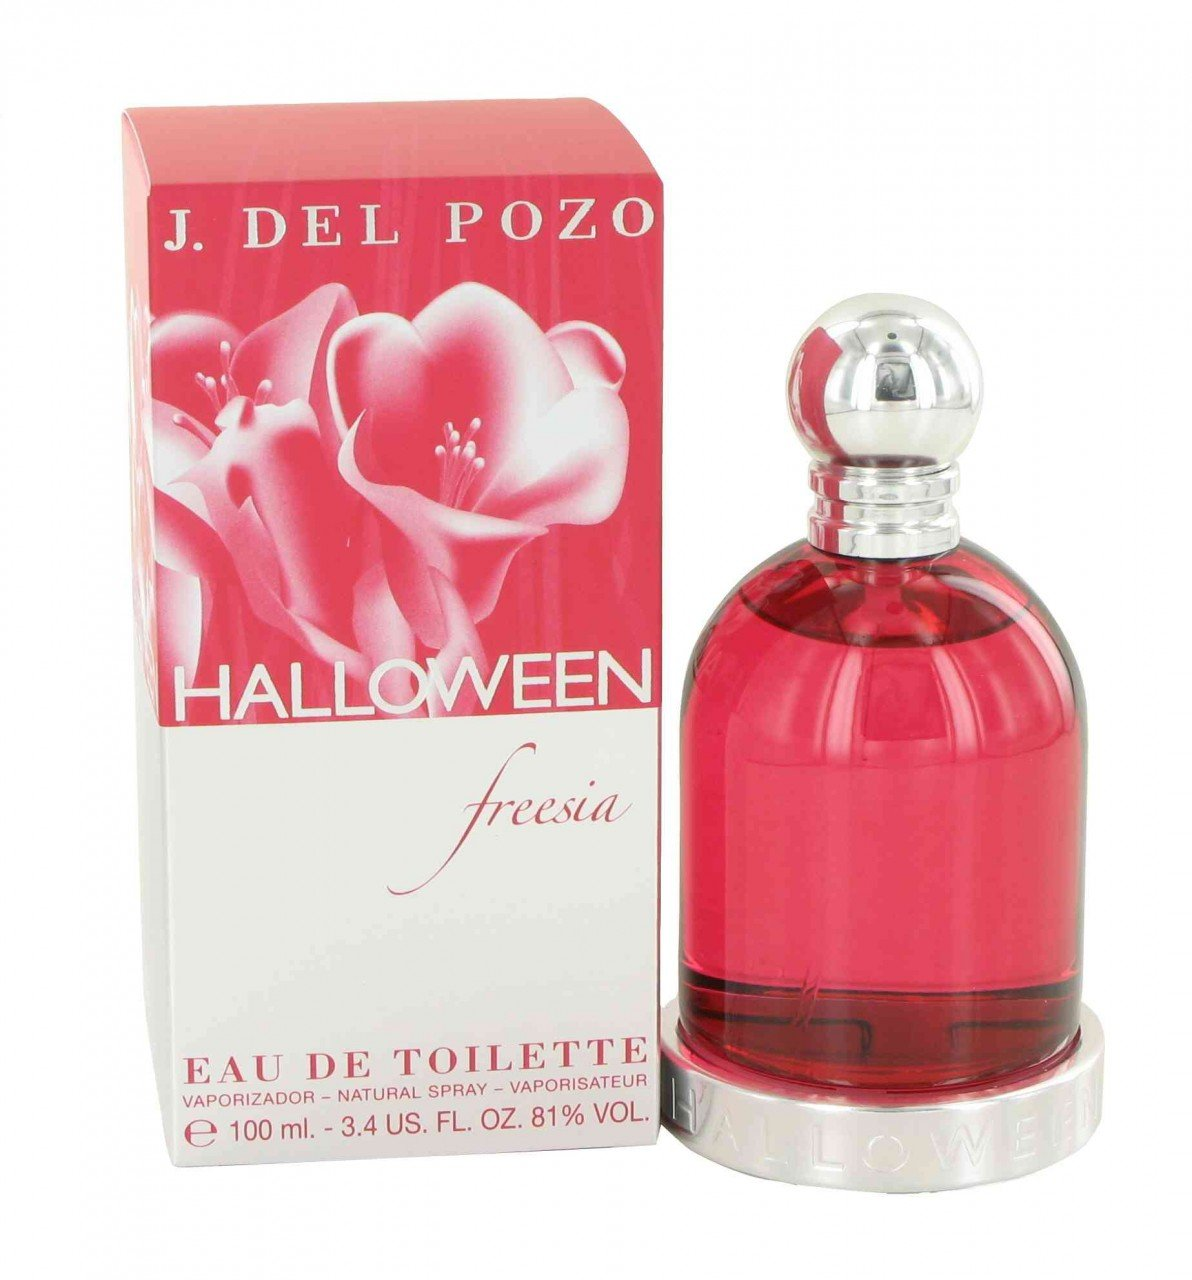 amazoncom halloween freesia eau de toilette spray for women 34 ounce perfume halloween j del pozo beauty - Halloween Purfume